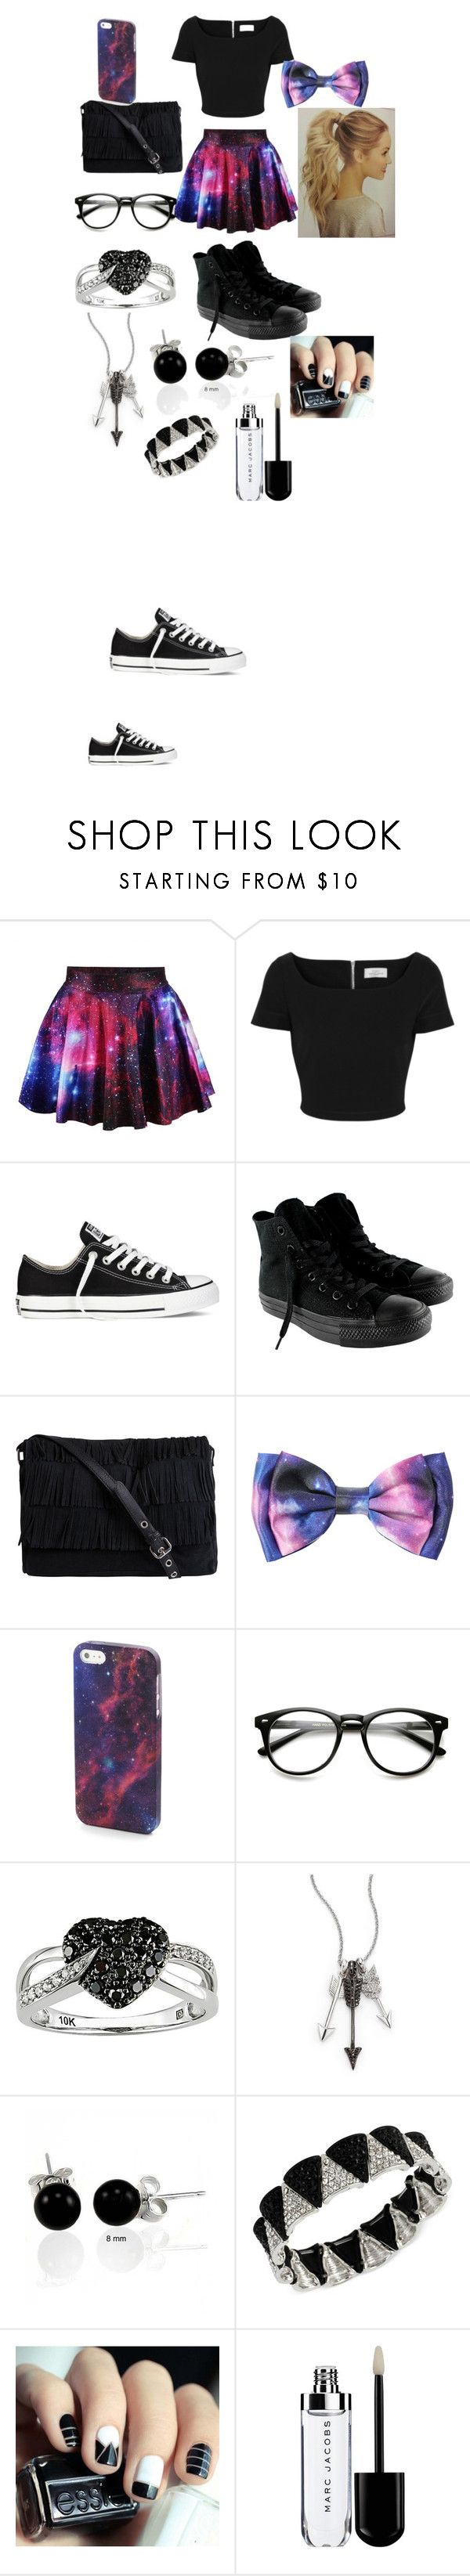 """""""party/basketball game outfit"""" by beyouncestorey ❤ liked on Polyvore featuring Preen, Converse, Pieces, Ice, Jade Jagger, Bling Jewelry and Steve Madden"""